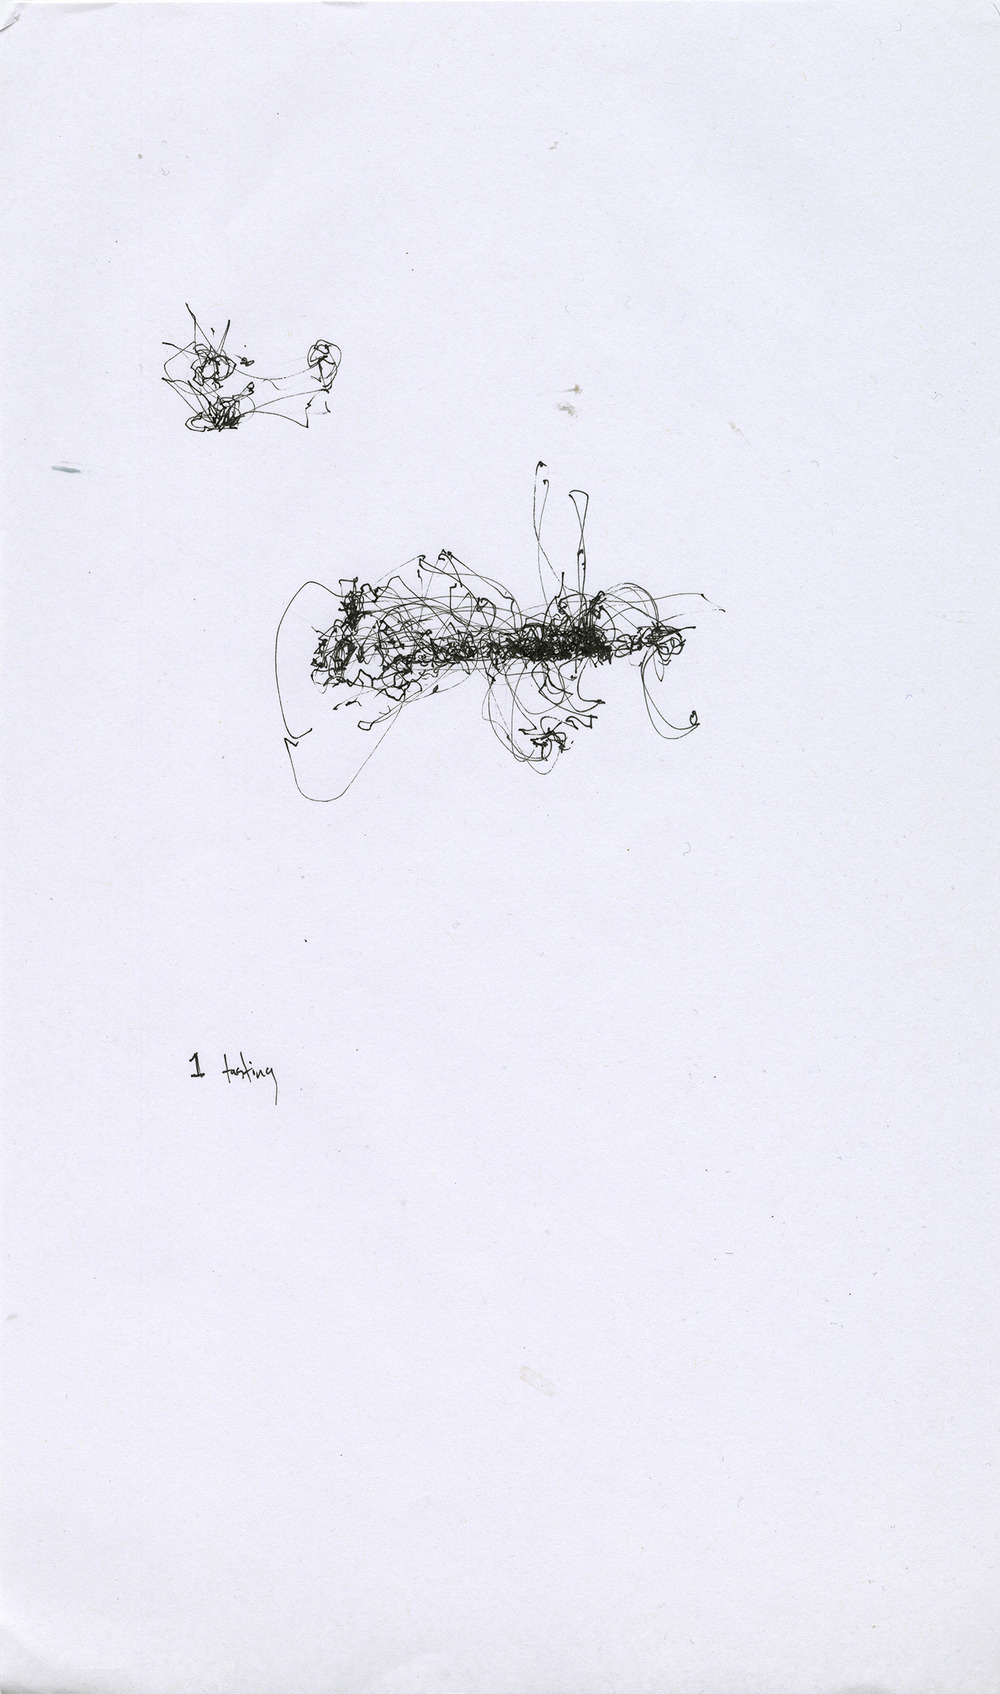 Kinetic mapping in the style of Deligny (I/II) , ink on paper, 8.5 x 13 in., Castagna Restaurant, Portland OR (2015)